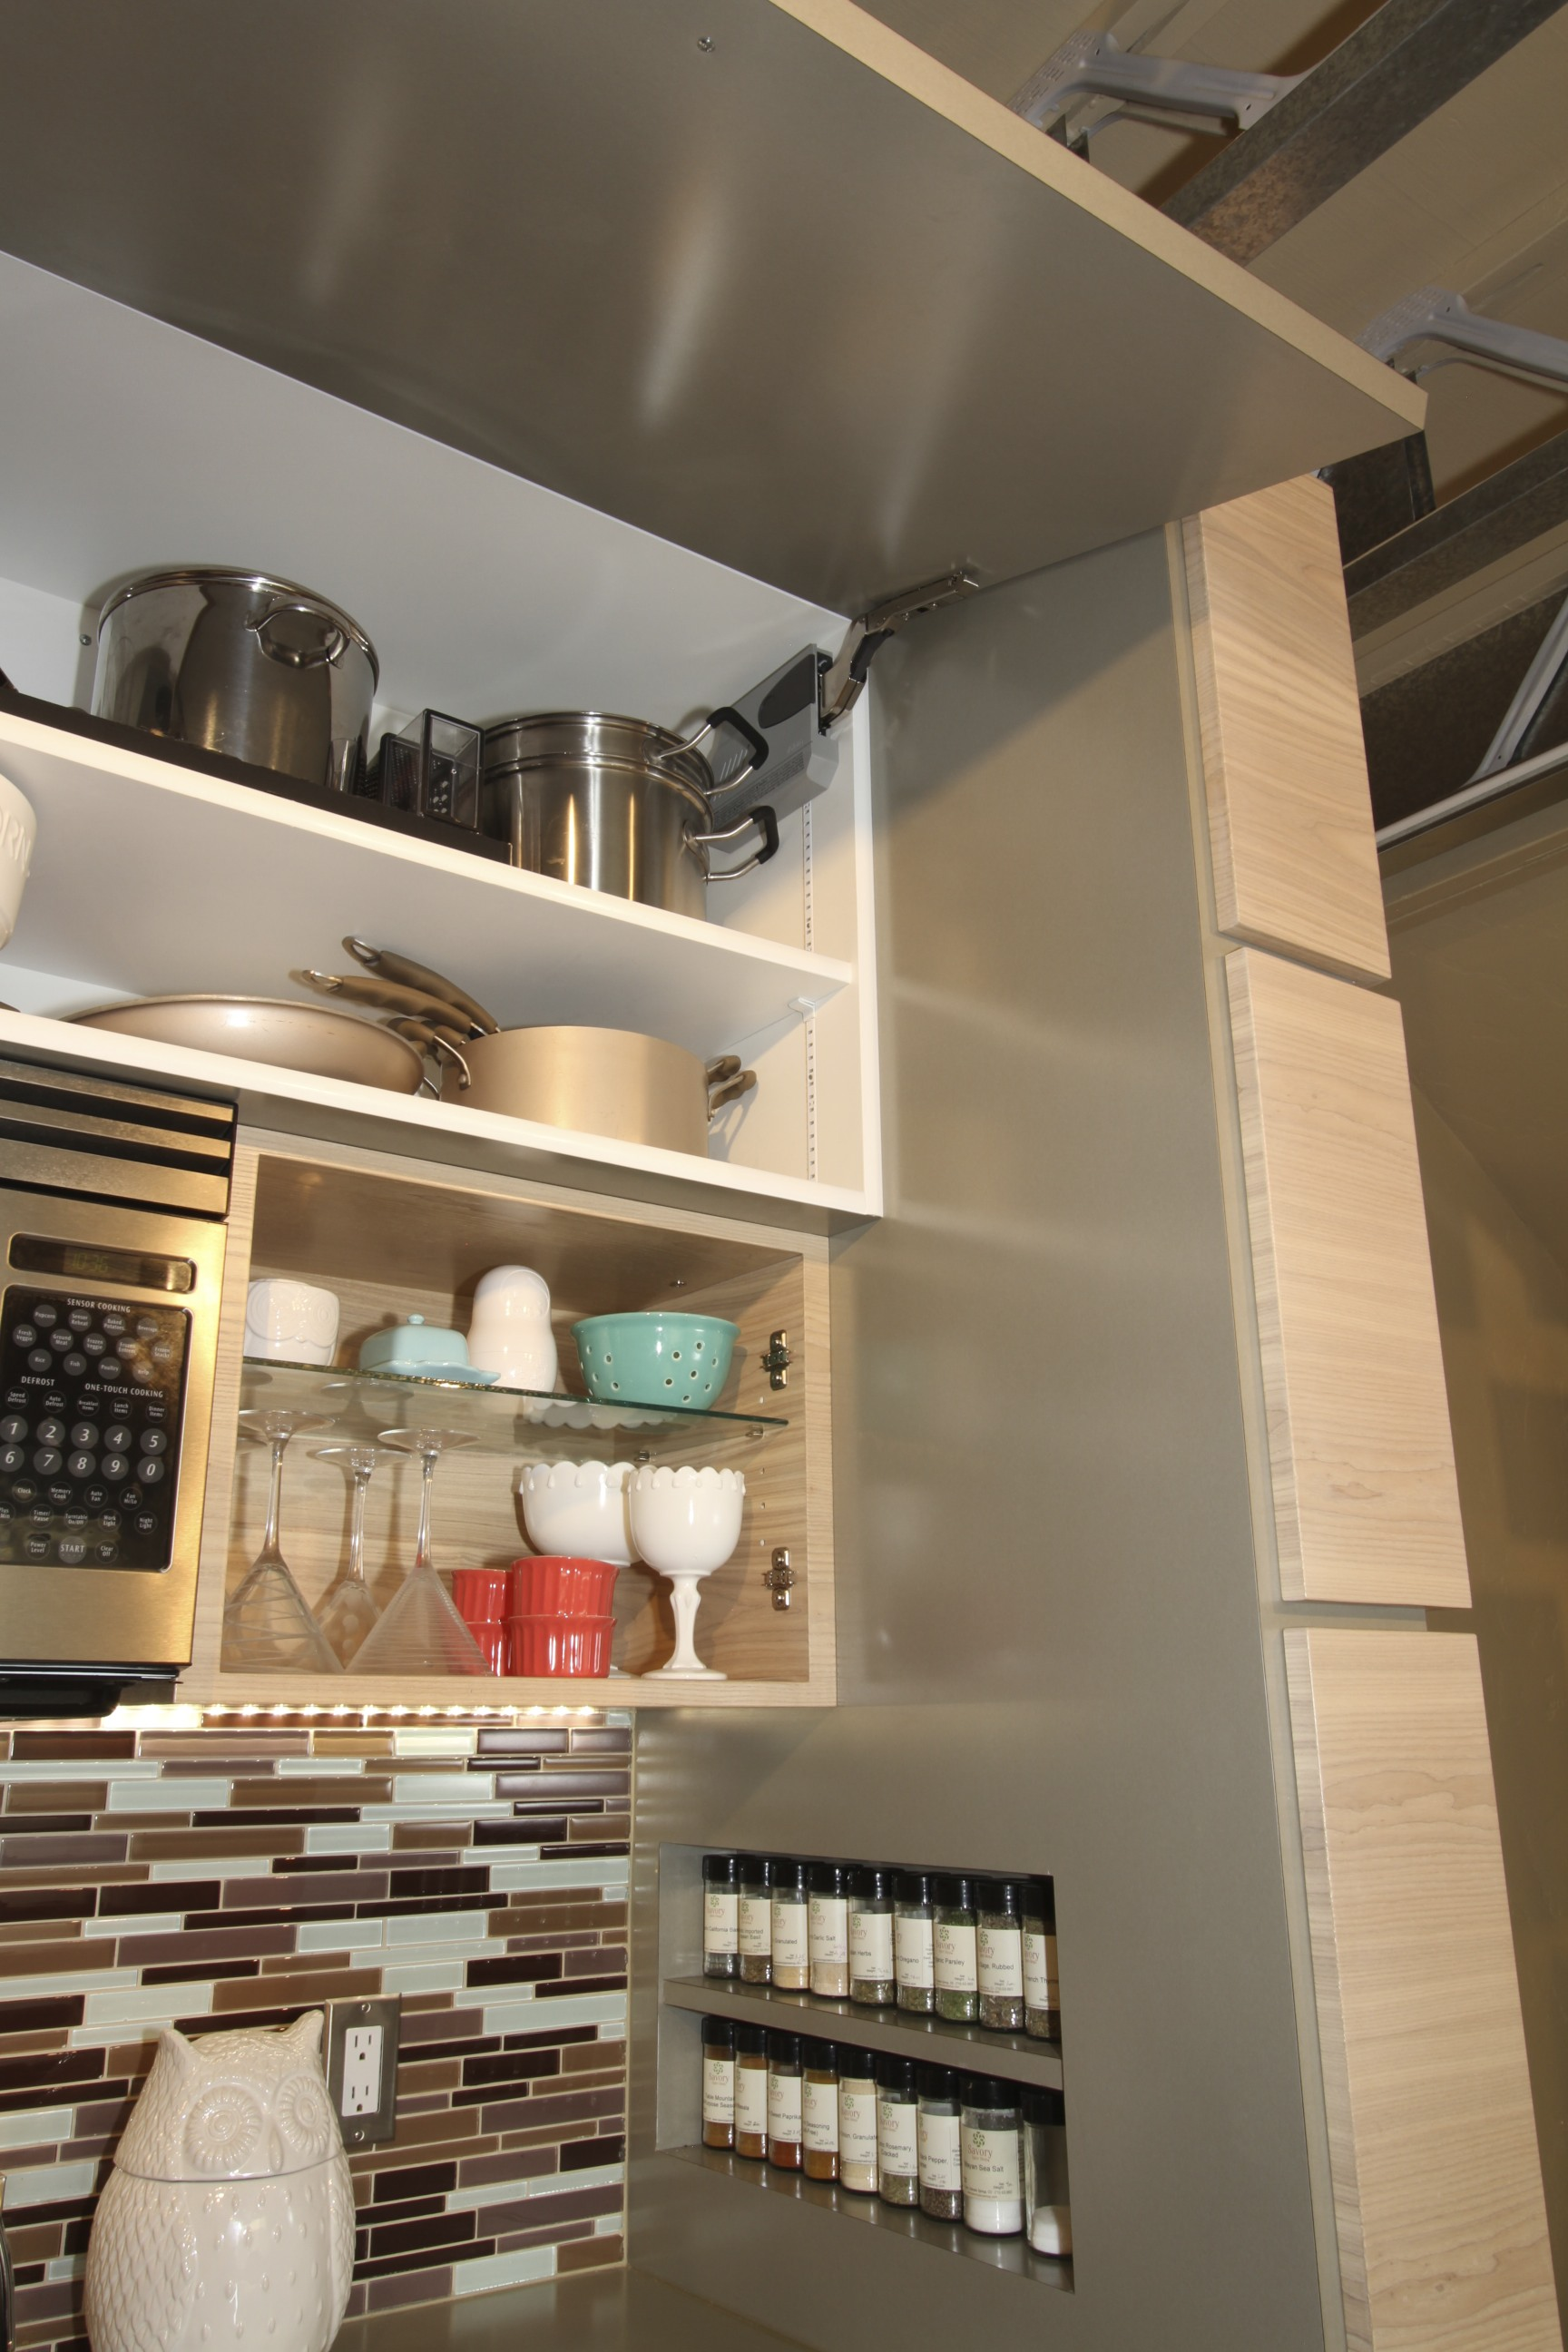 Built in spice shelves and lift up high storage